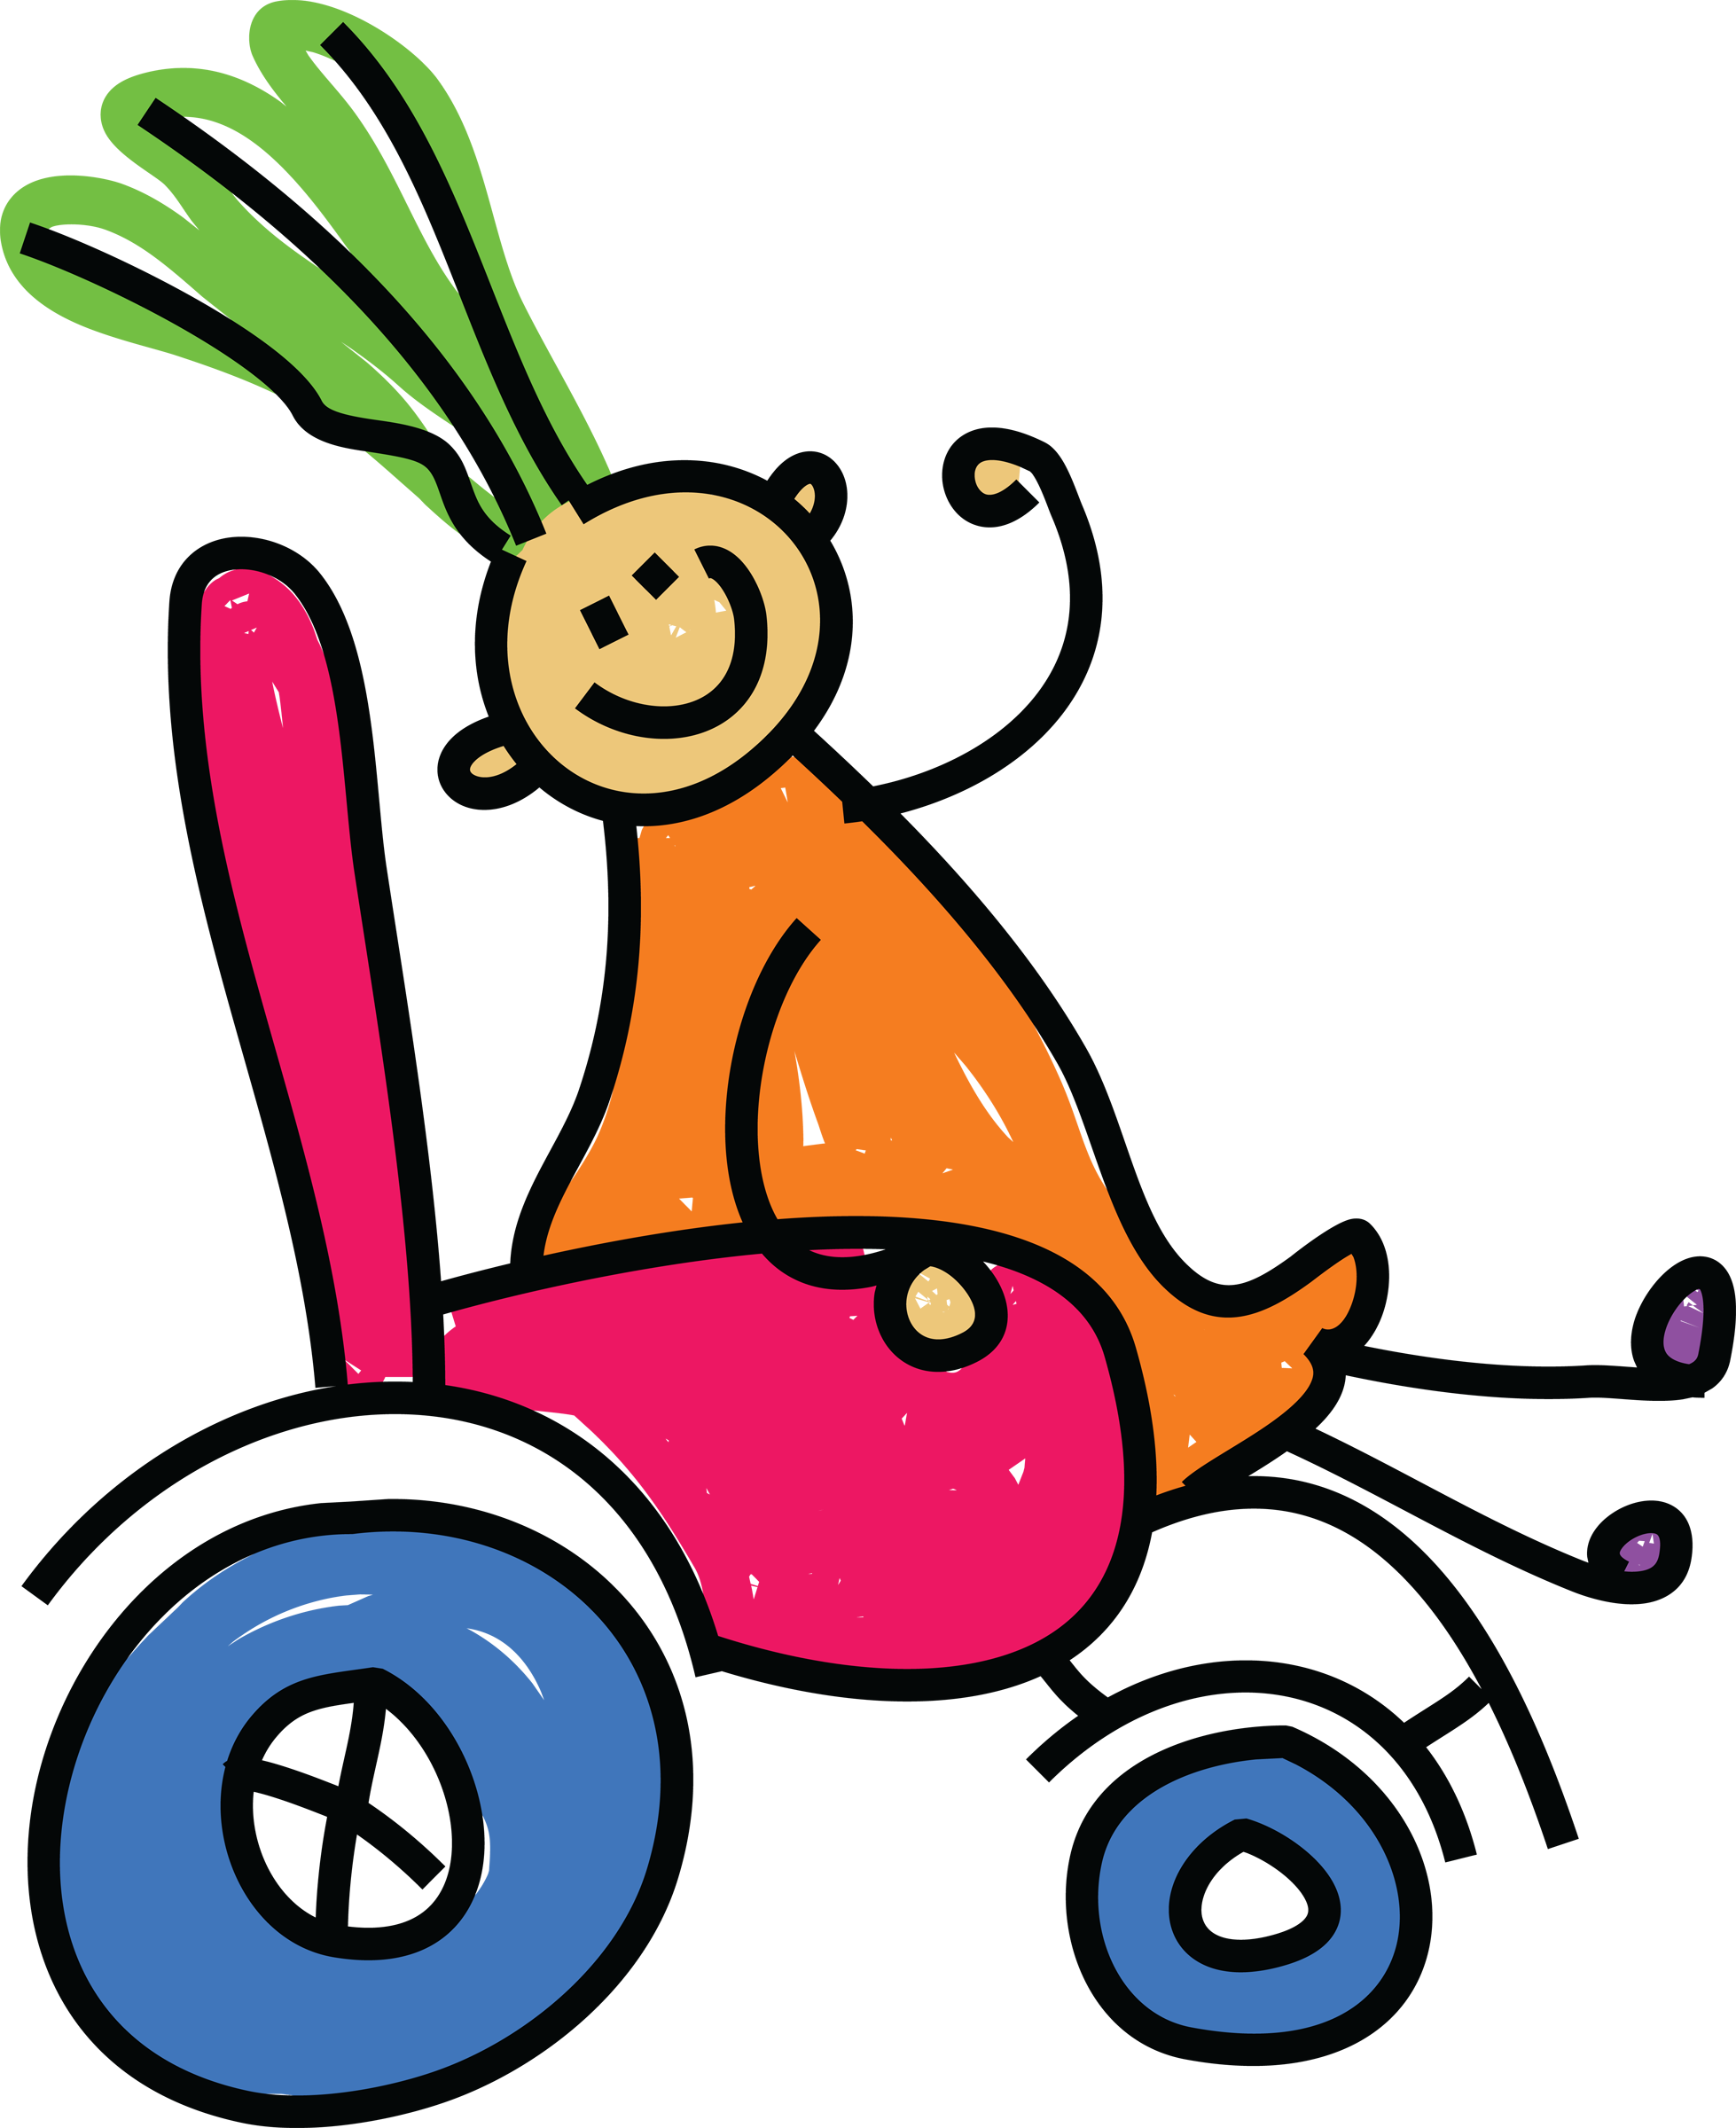 simple colourful cartoon drawing of a person sitting in a wheelchair